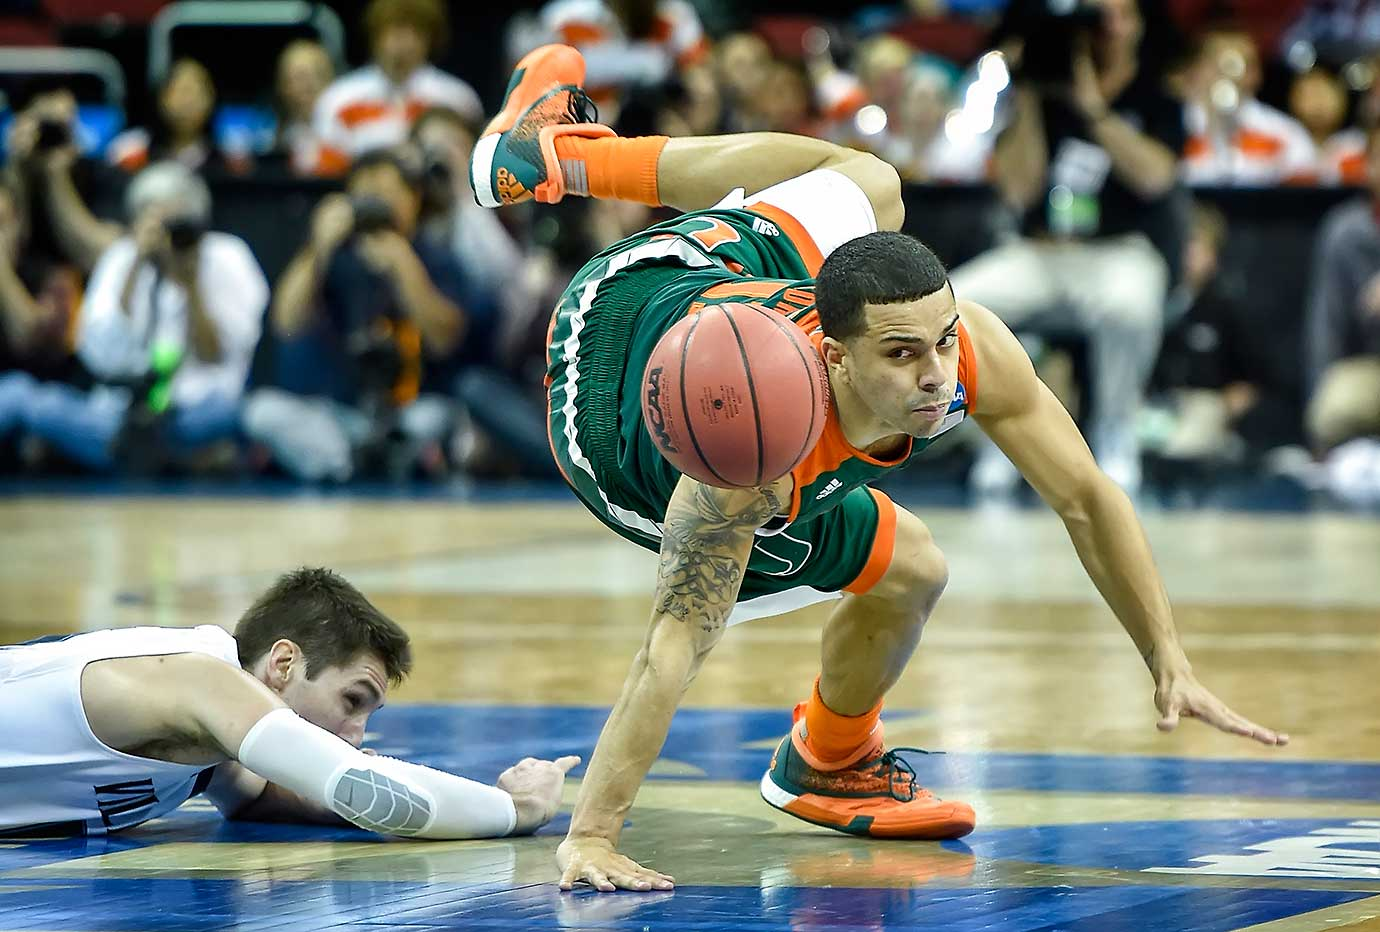 Miami's Angel Rodriguez loses control of the ball with Villanova's Ryan Arcidiacono defending.